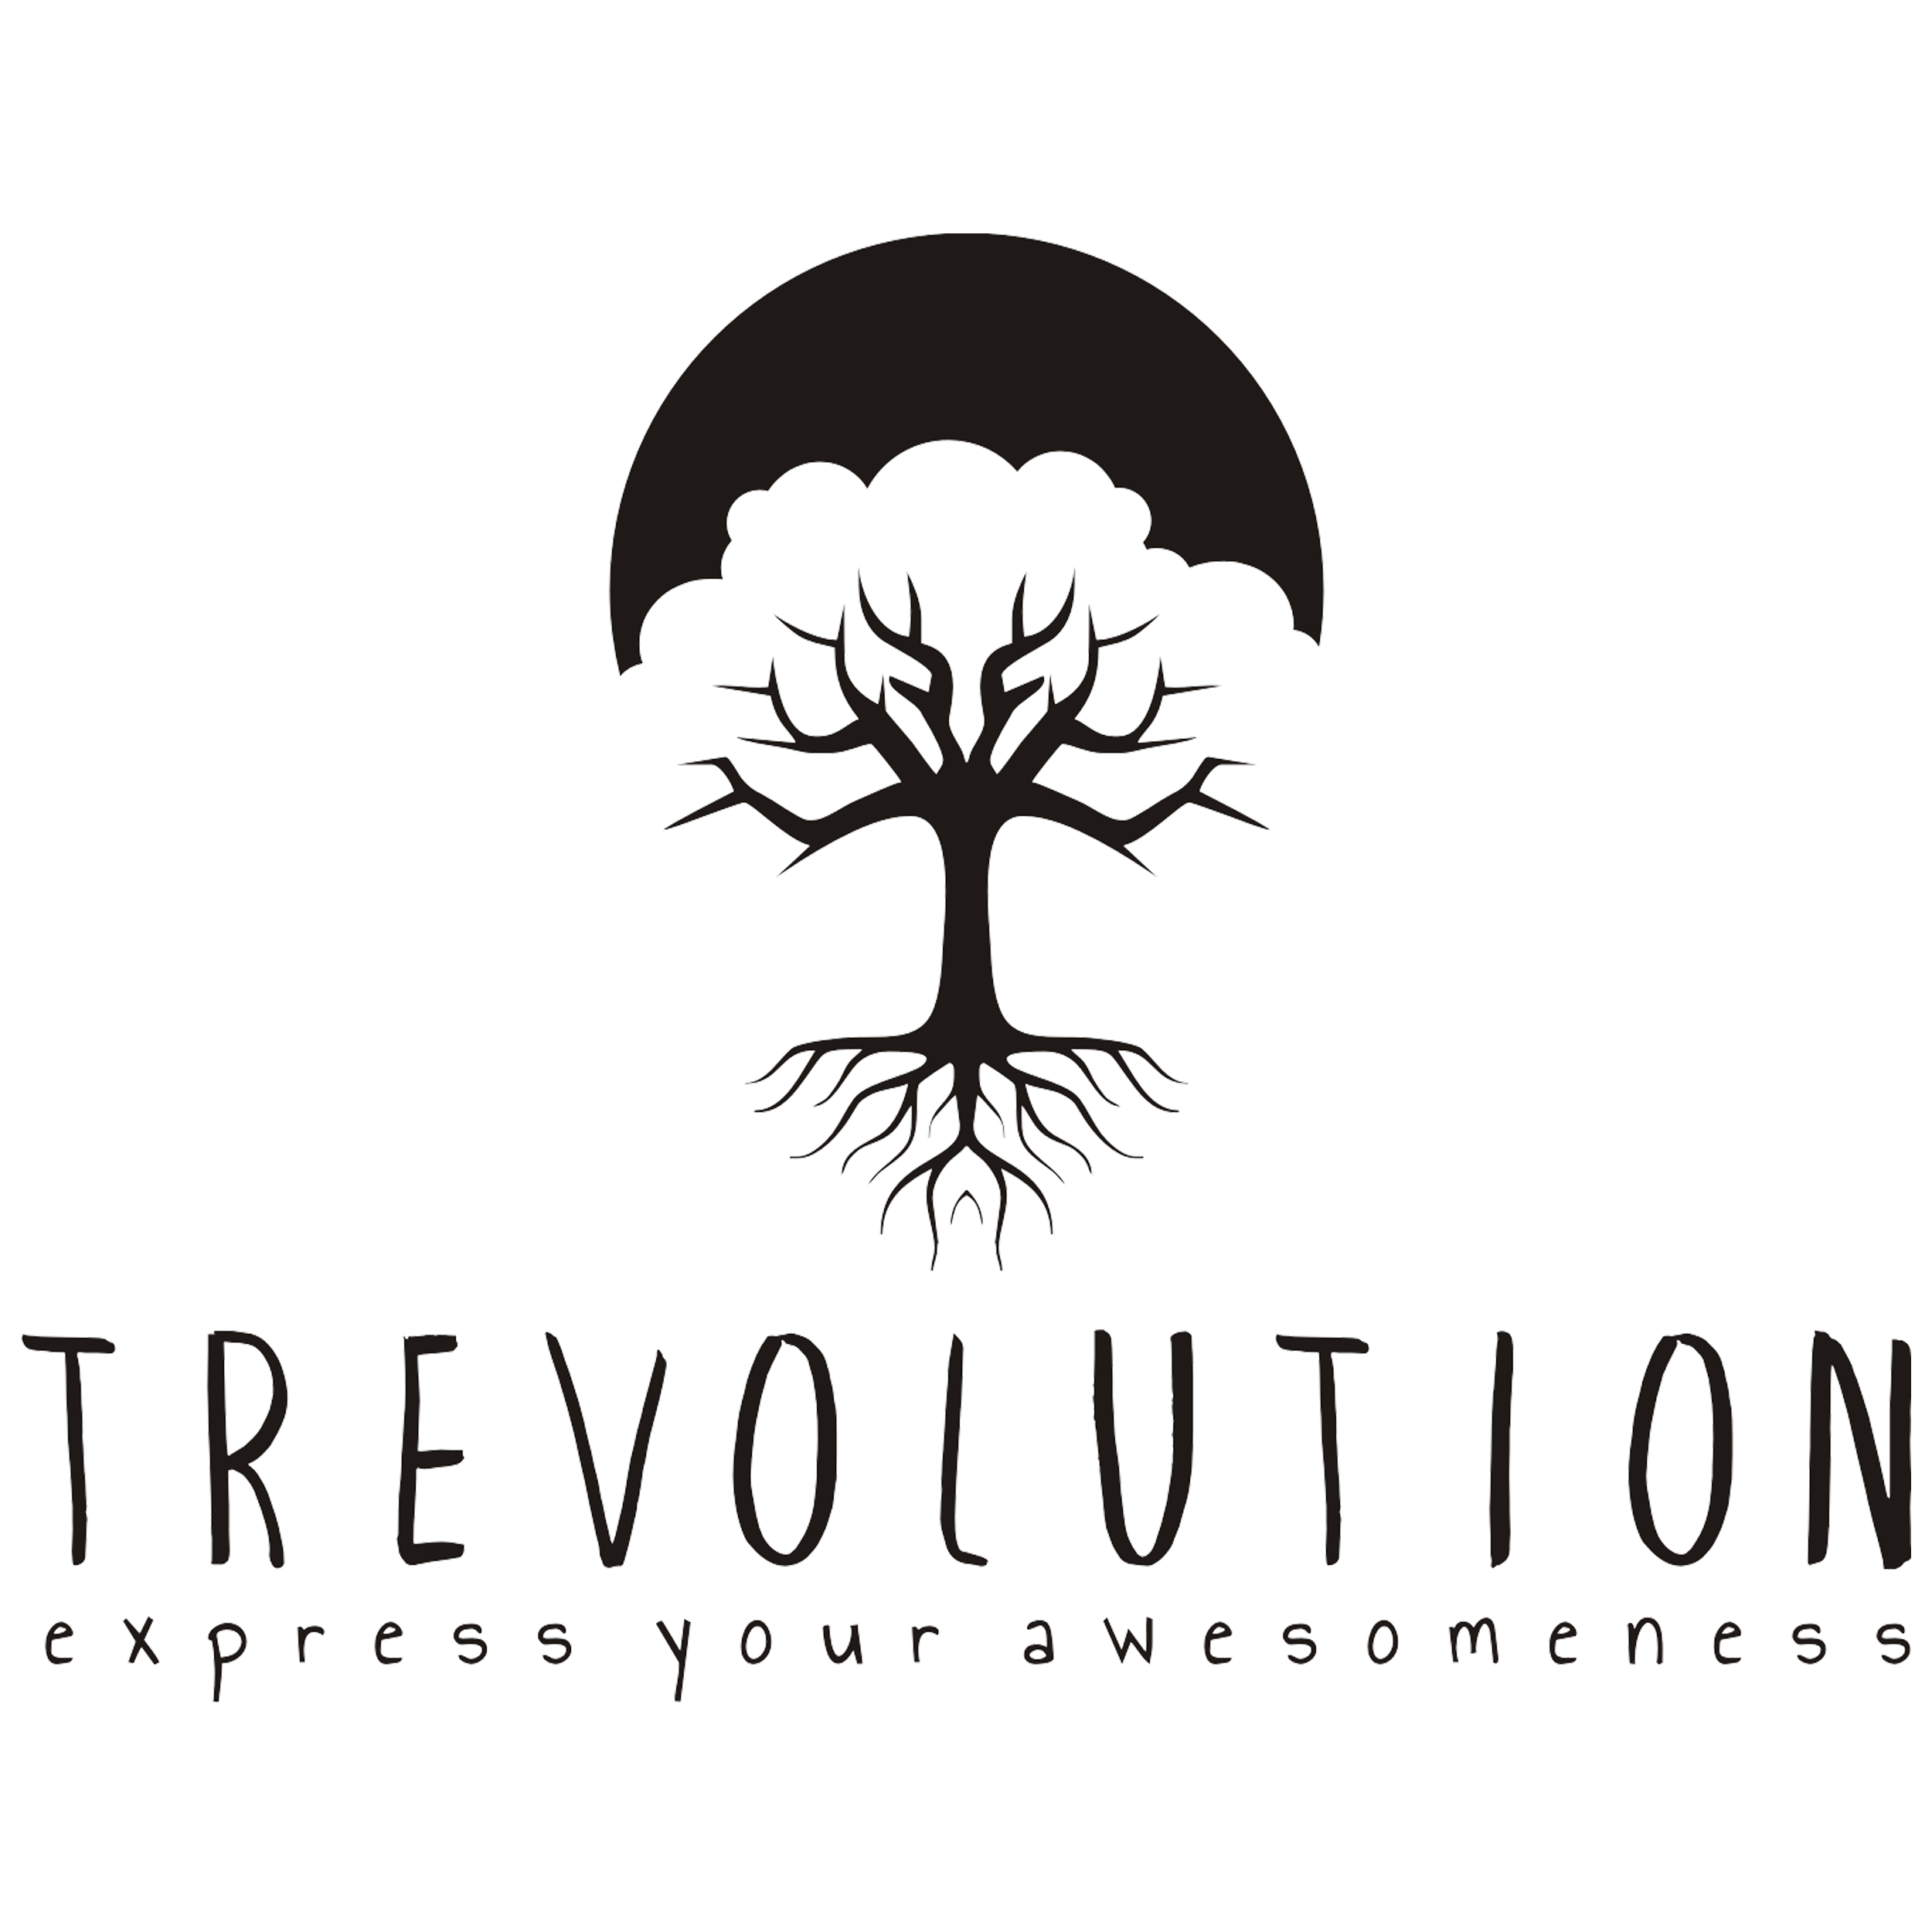 Are you ready for the Trevolution?